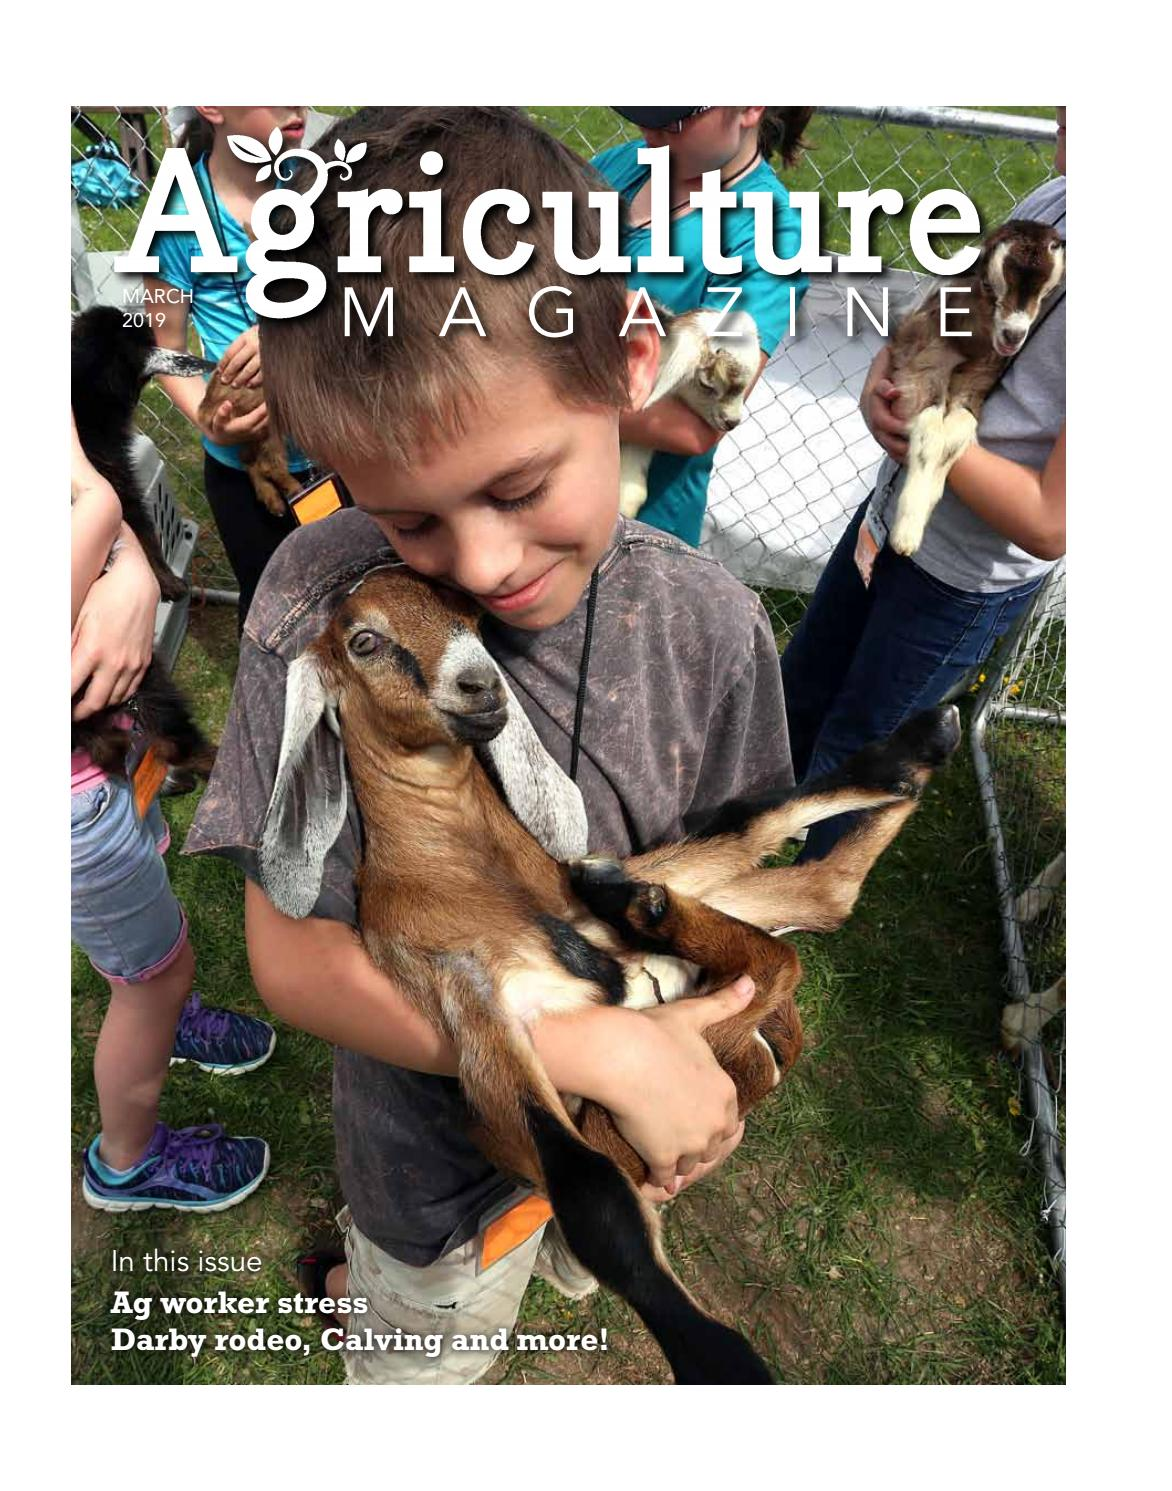 Agricultural Magazine March 2019 by Ravalli Republic - issuu